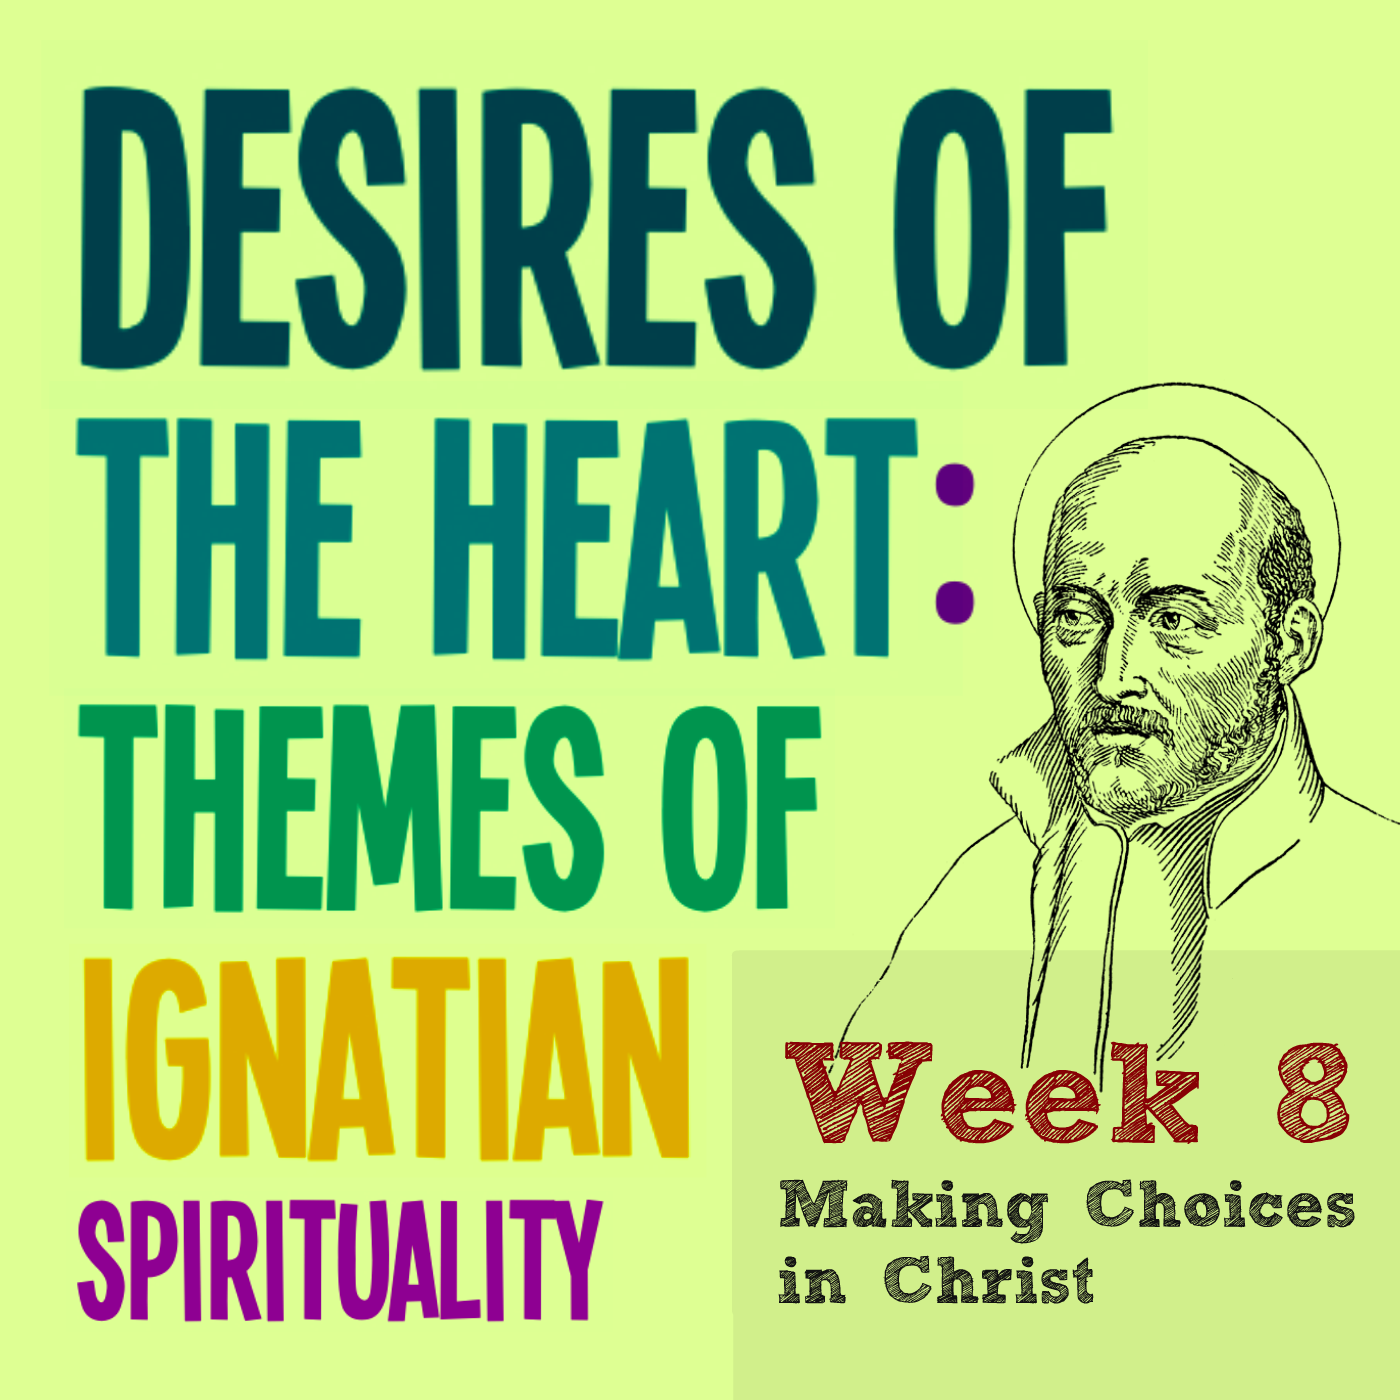 Making Choices in Christ – Week 8